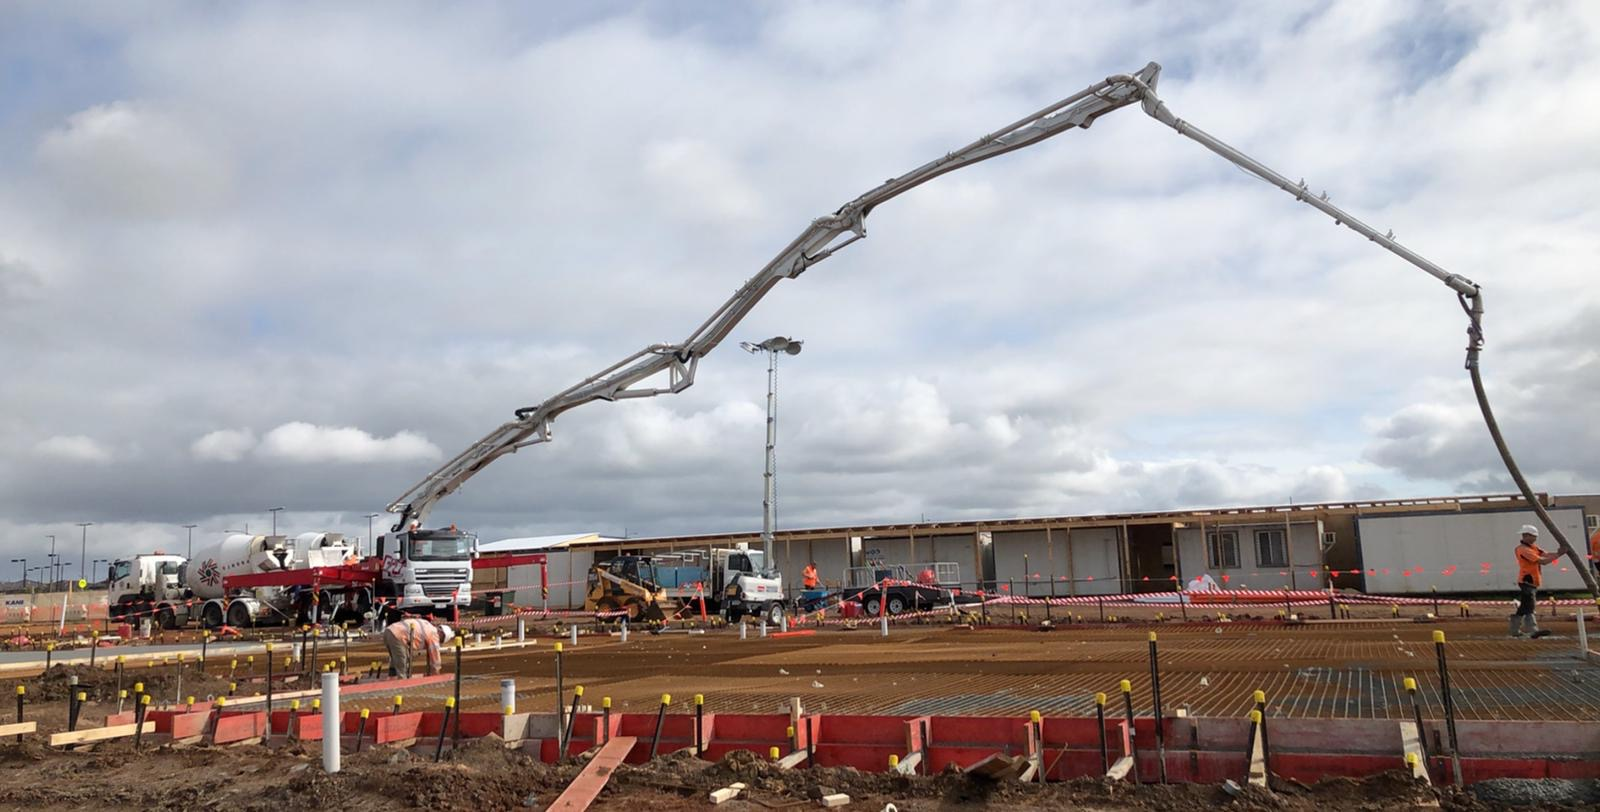 Get-Pumped-Concrete-Pumping-office-buildings-Commerical-Concrete-Pumping-Melbourne